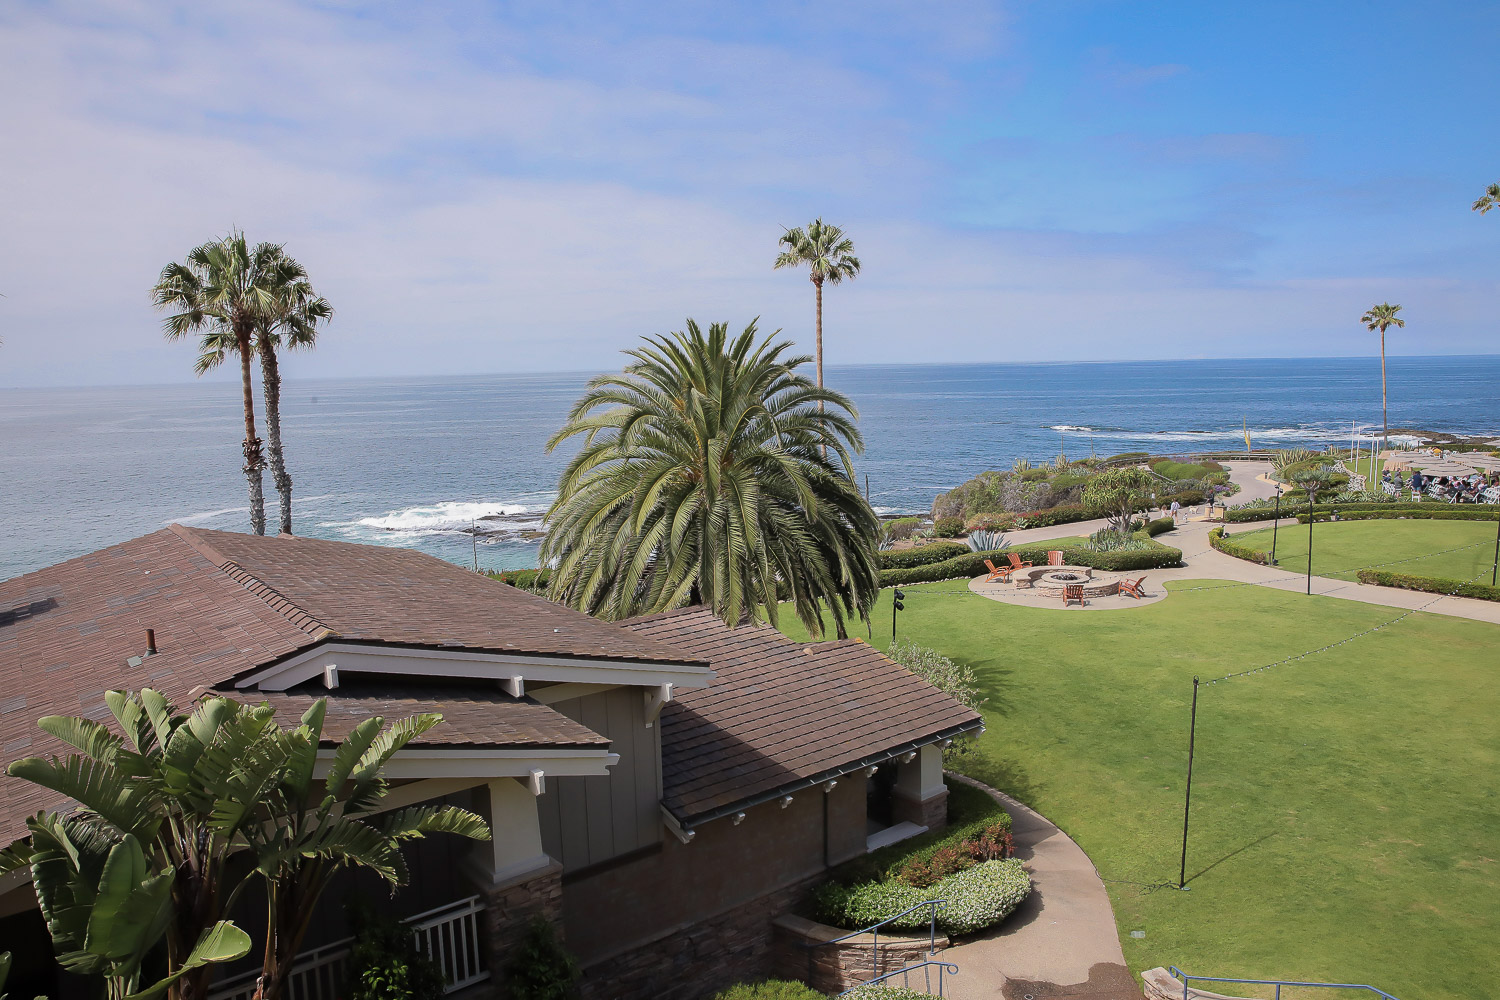 montage Laguna Beach | Travel Hacks by popular life and style blog, The Sweetest Thing: image of Montage Laguna Beach.